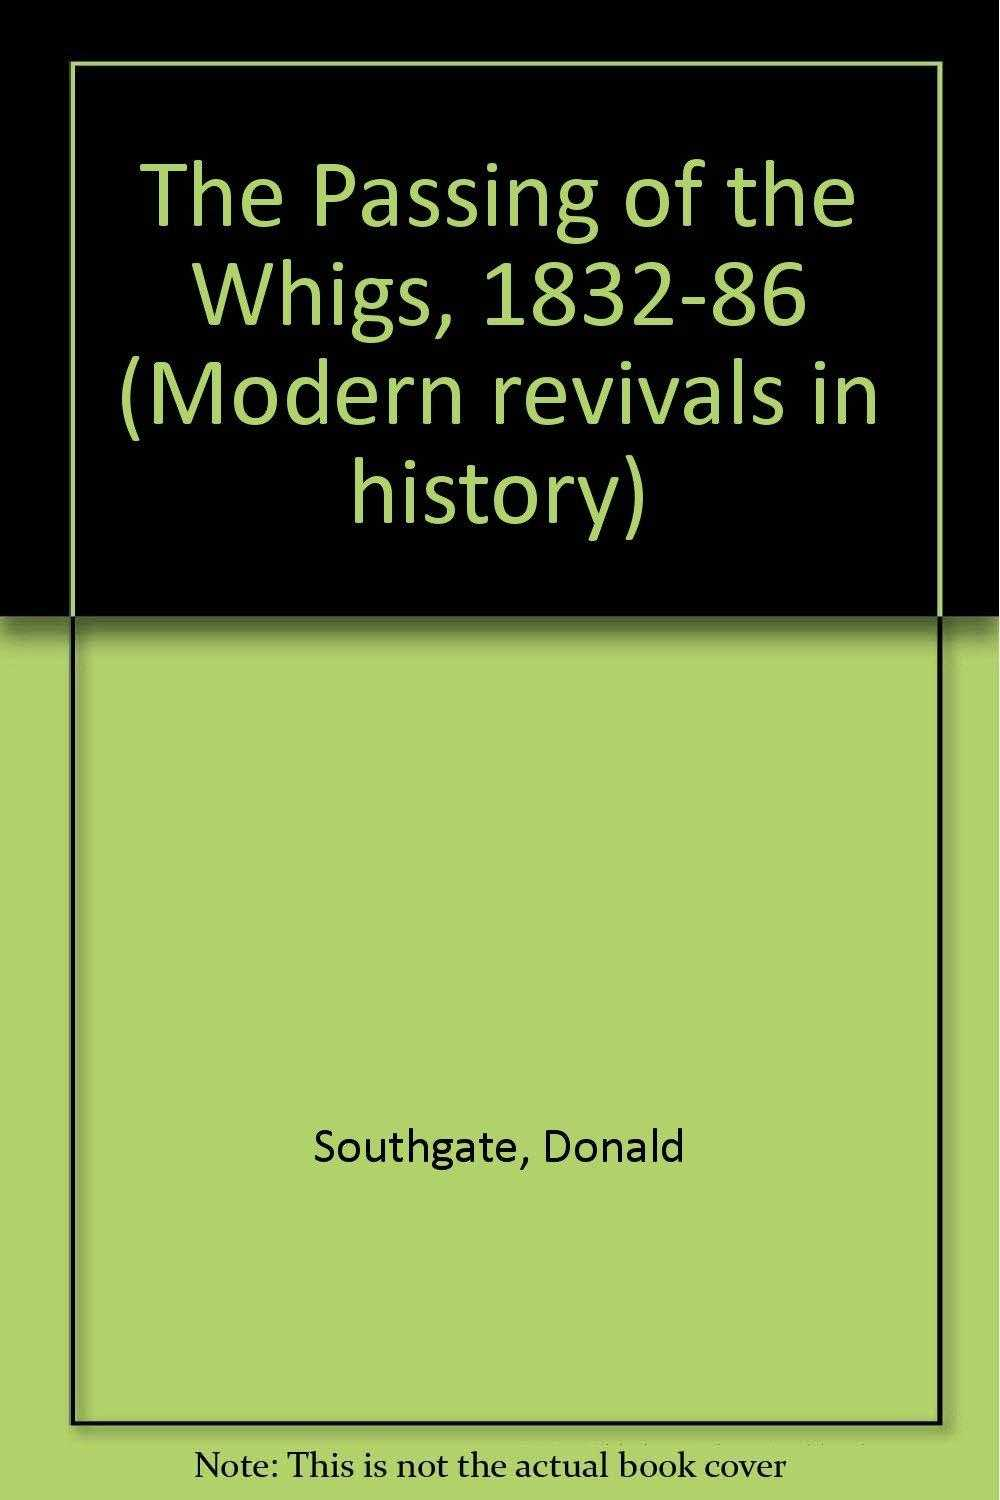 SOUTHGATE, DONALD - The Passing of the Whigs, 1832-86.